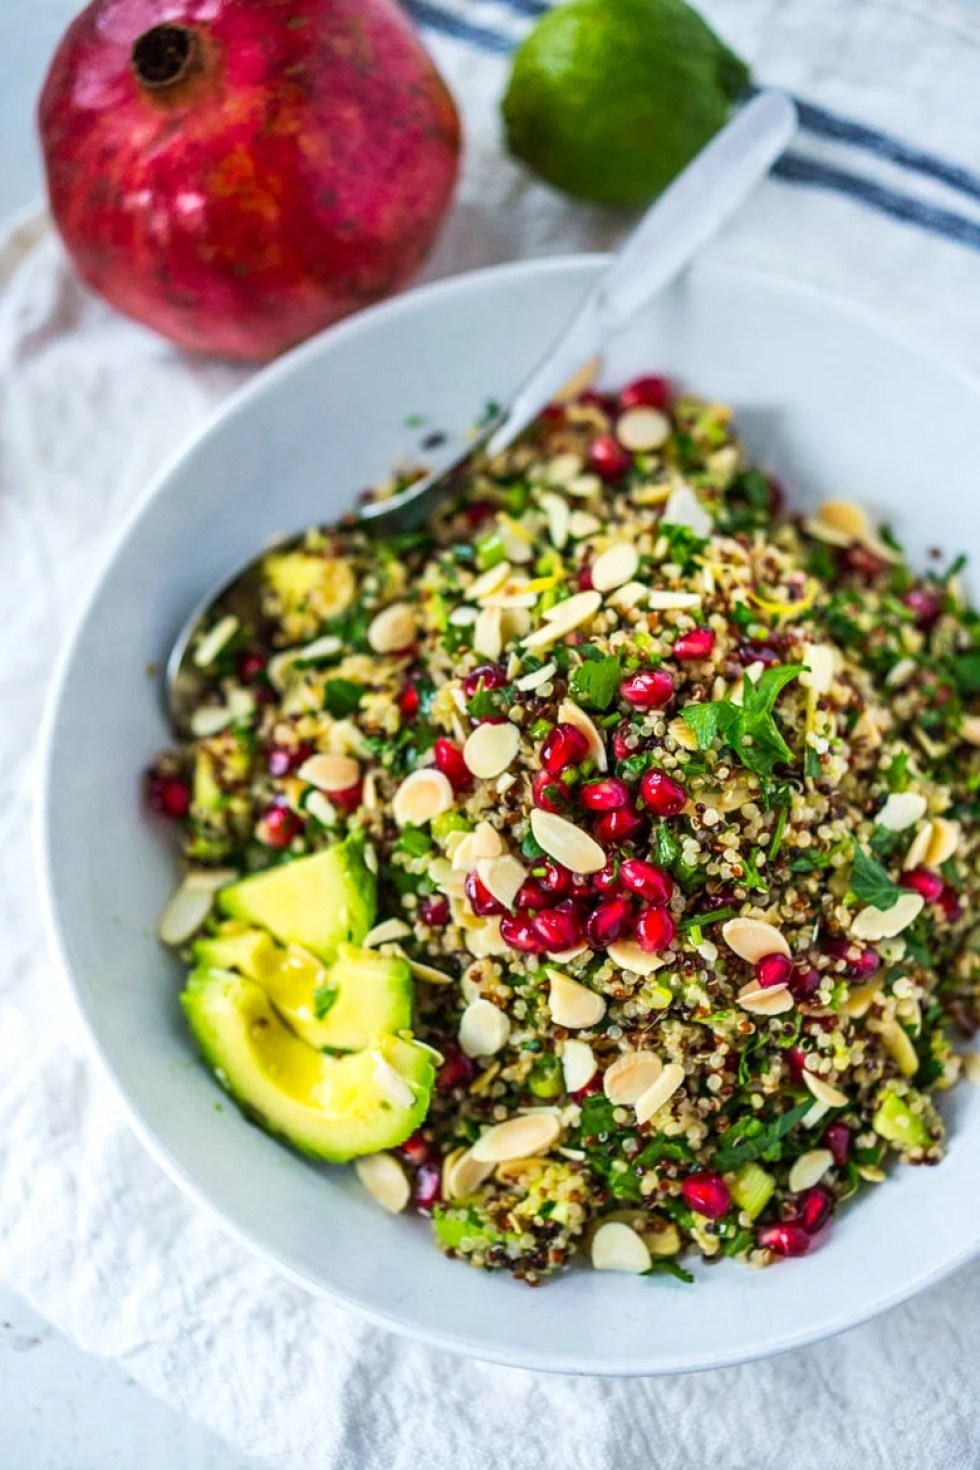 10 Clean Eating Recipes to Restore & Heal the body- Holiday Crunch Salad with Quinoa, almonds, pomegranate, a cleasning vegan and gluten free salad, high in anti-oxcidents and protein!   www.feastingathome.com